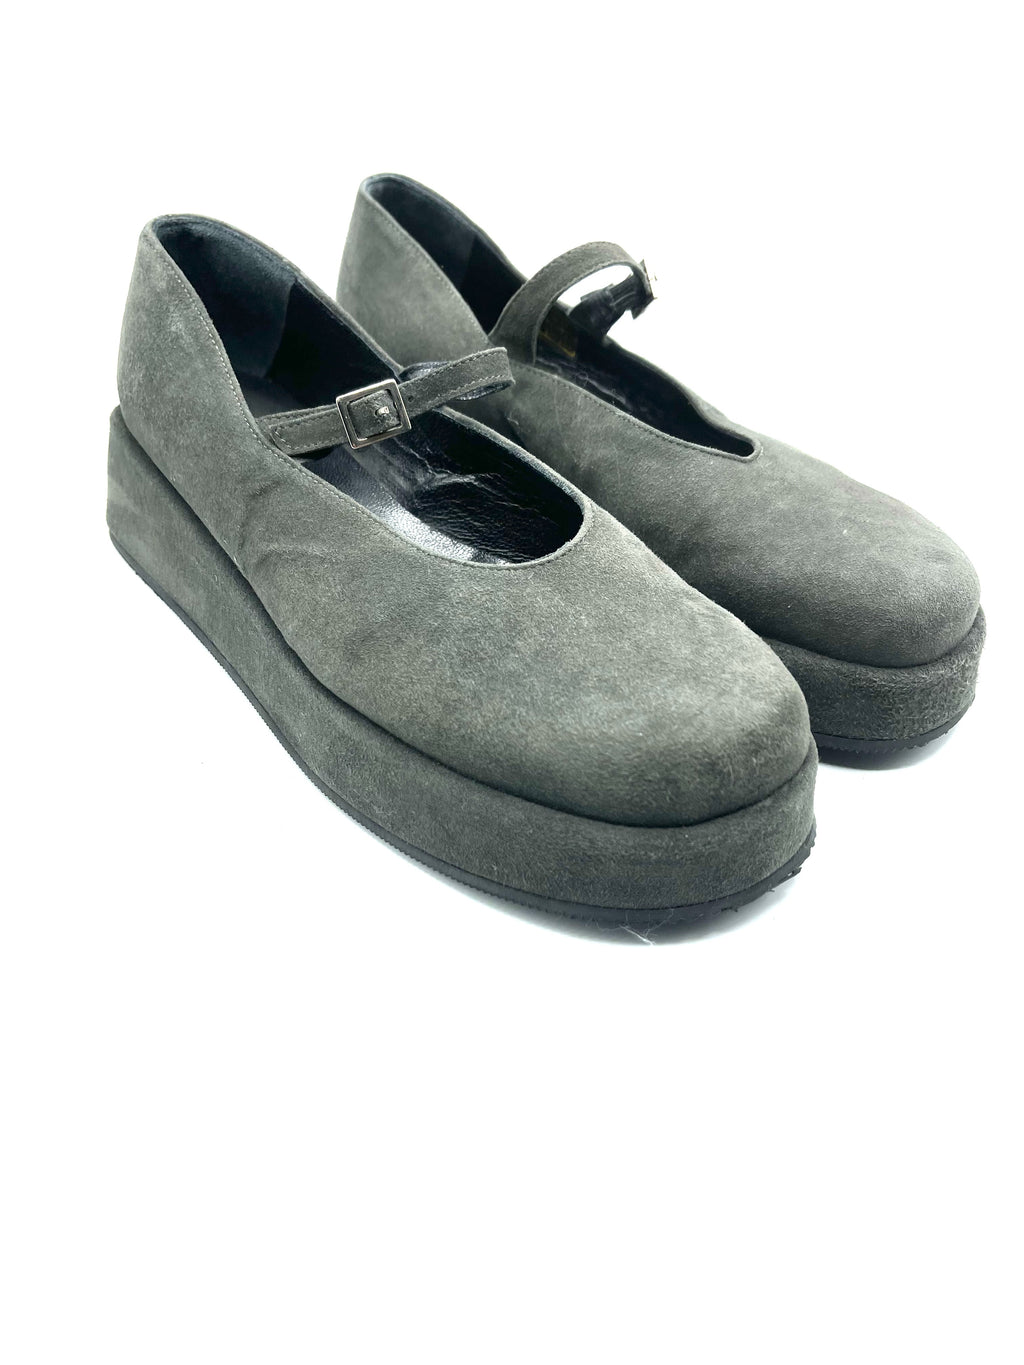 Espace 90s Grey Suede Mary Jane Flatform Shoes ANGLE 1 of 6